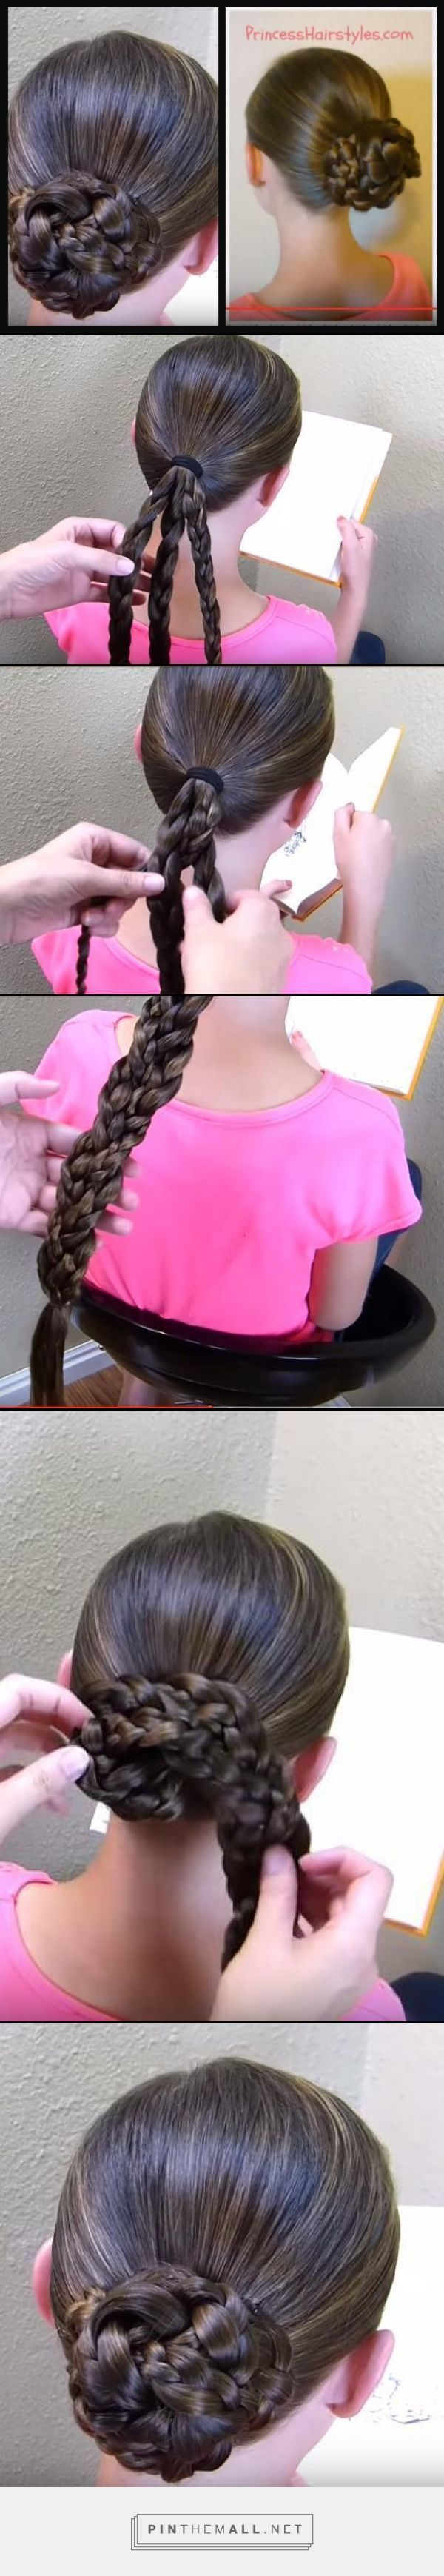 Easy Triple Braid Bun, peinados básicos de regreso a la escuela